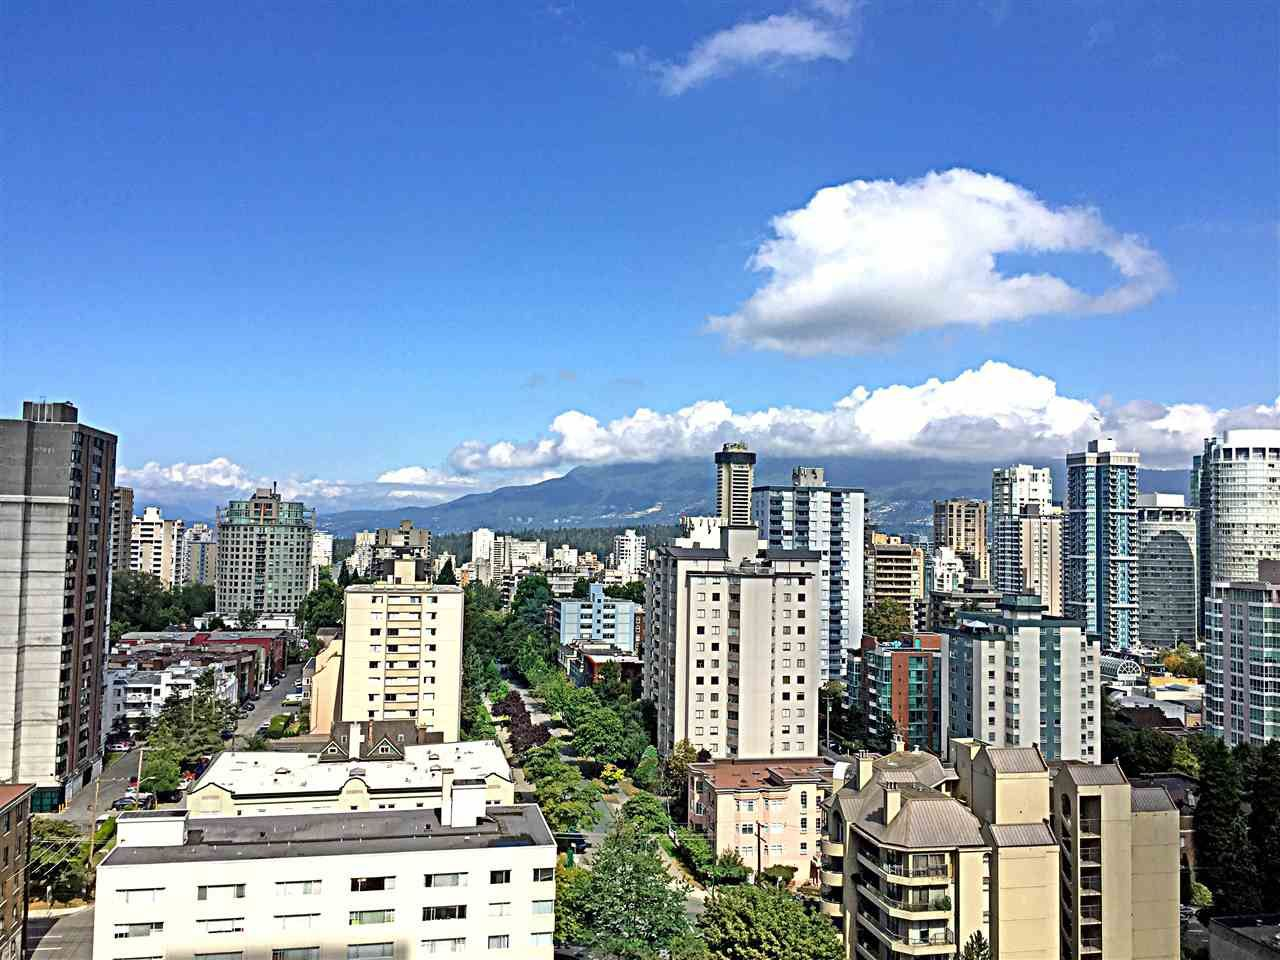 Main Photo: 1805 1028 BARCLAY STREET in Vancouver: West End VW Condo for sale (Vancouver West)  : MLS®# R2096950